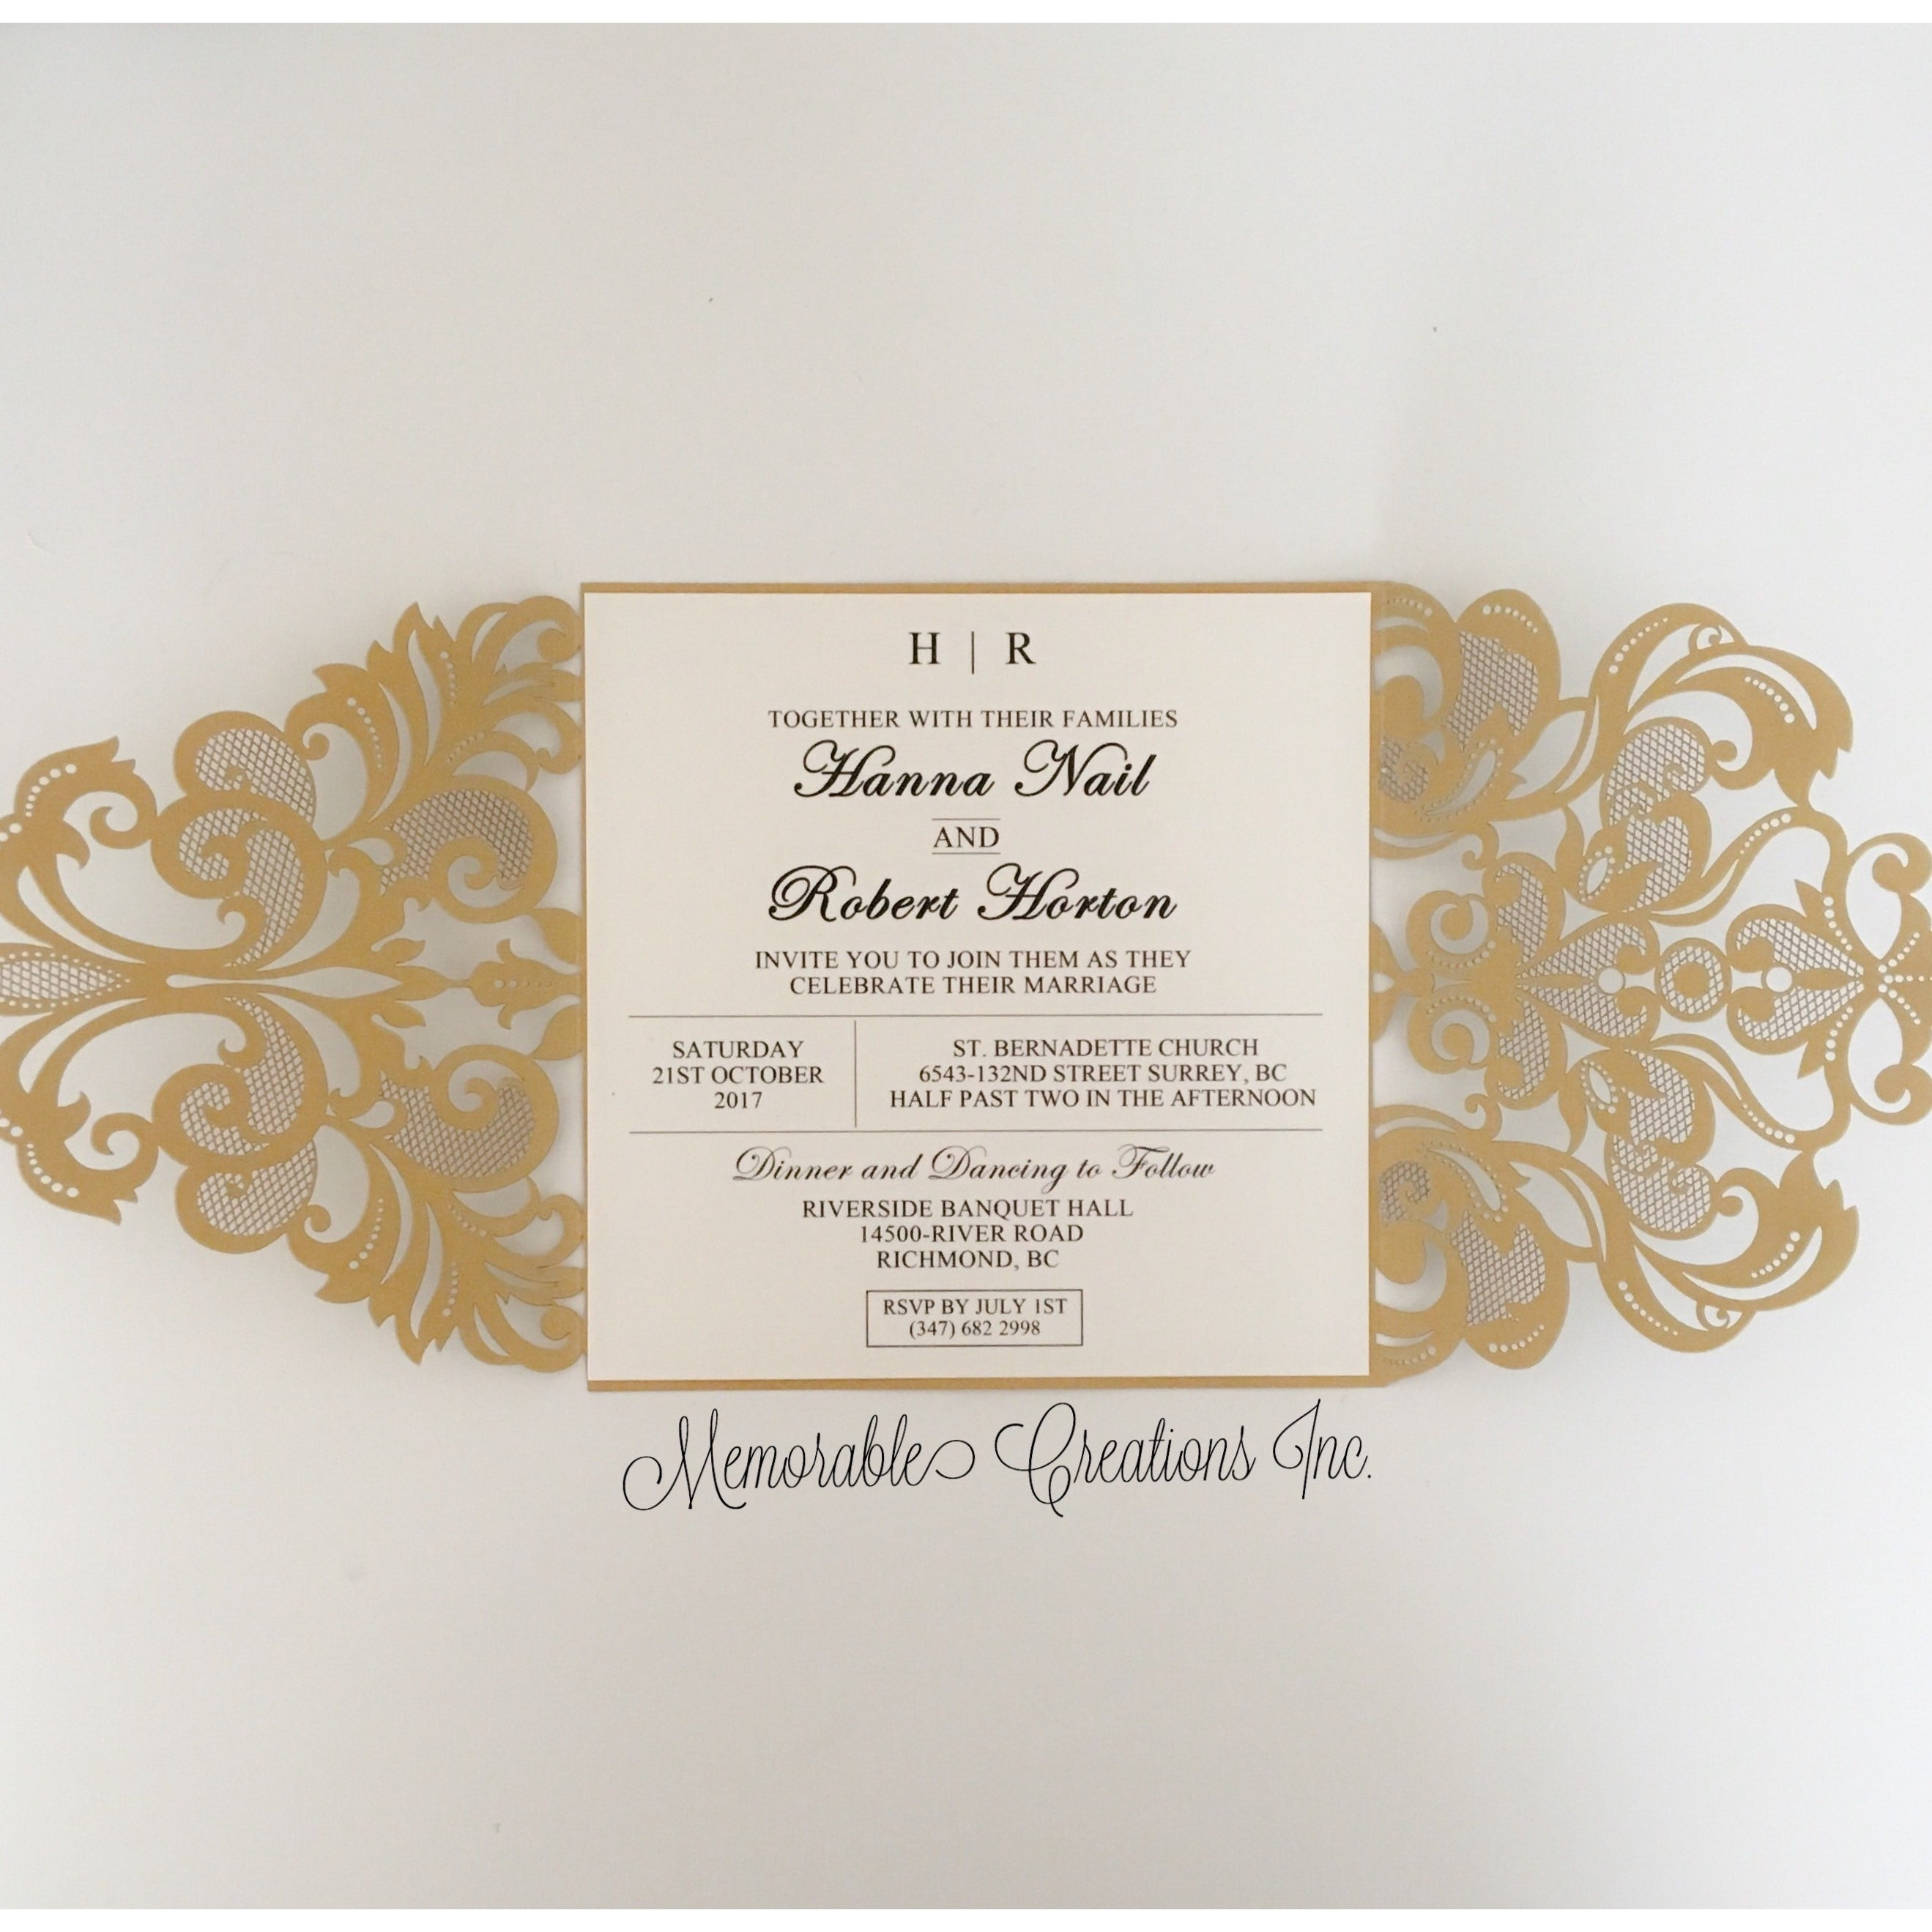 PCC-WED-E-S03 - Wedding Invitation – Memorable Creations Inc.